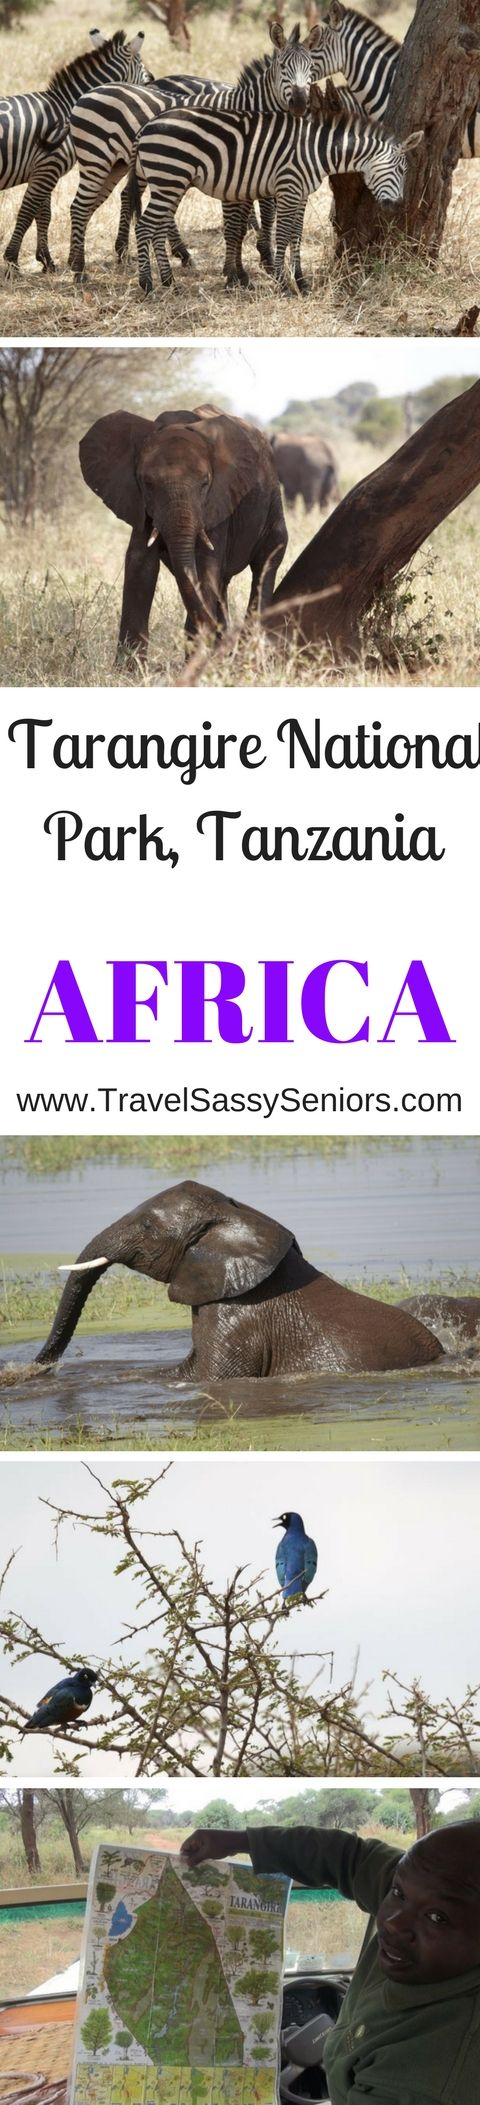 Tarangire National Park covers an area of 2,850 square kilometers which places it as the sixth largest national park in Tanzania.